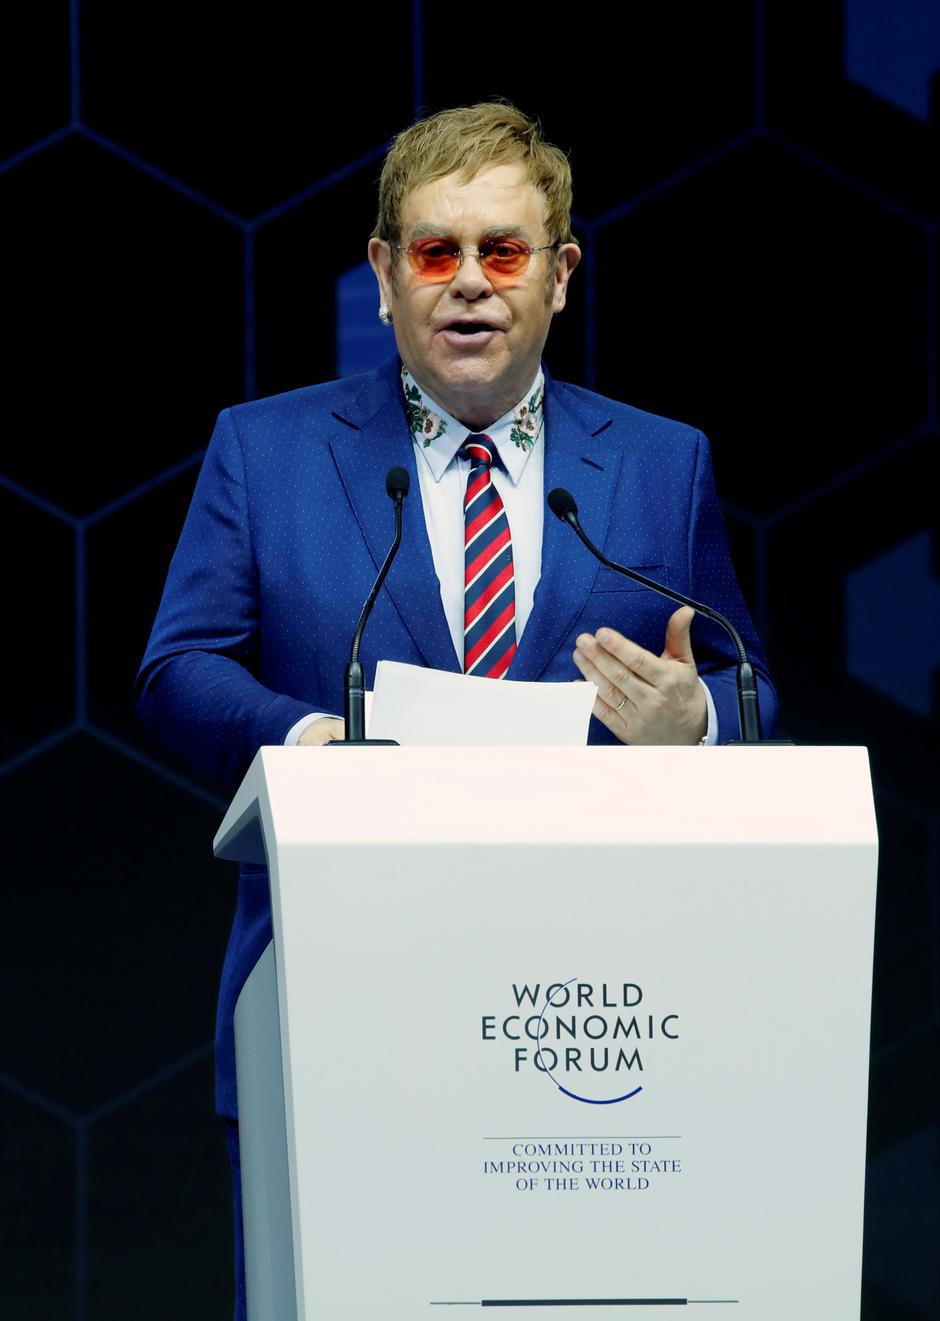 Singer Elton John speaks after receiving a Crystal Award from Hilde Schwab, Chairperson and Co-Founder, Schwab Foundation for Social Entrepreneurship, during the World Economic Forum (WEF) annual meeting in Davos | Autor: DENIS BALIBOUSE/REUTERS/PIXSELL/REUTERS/PIXSELL